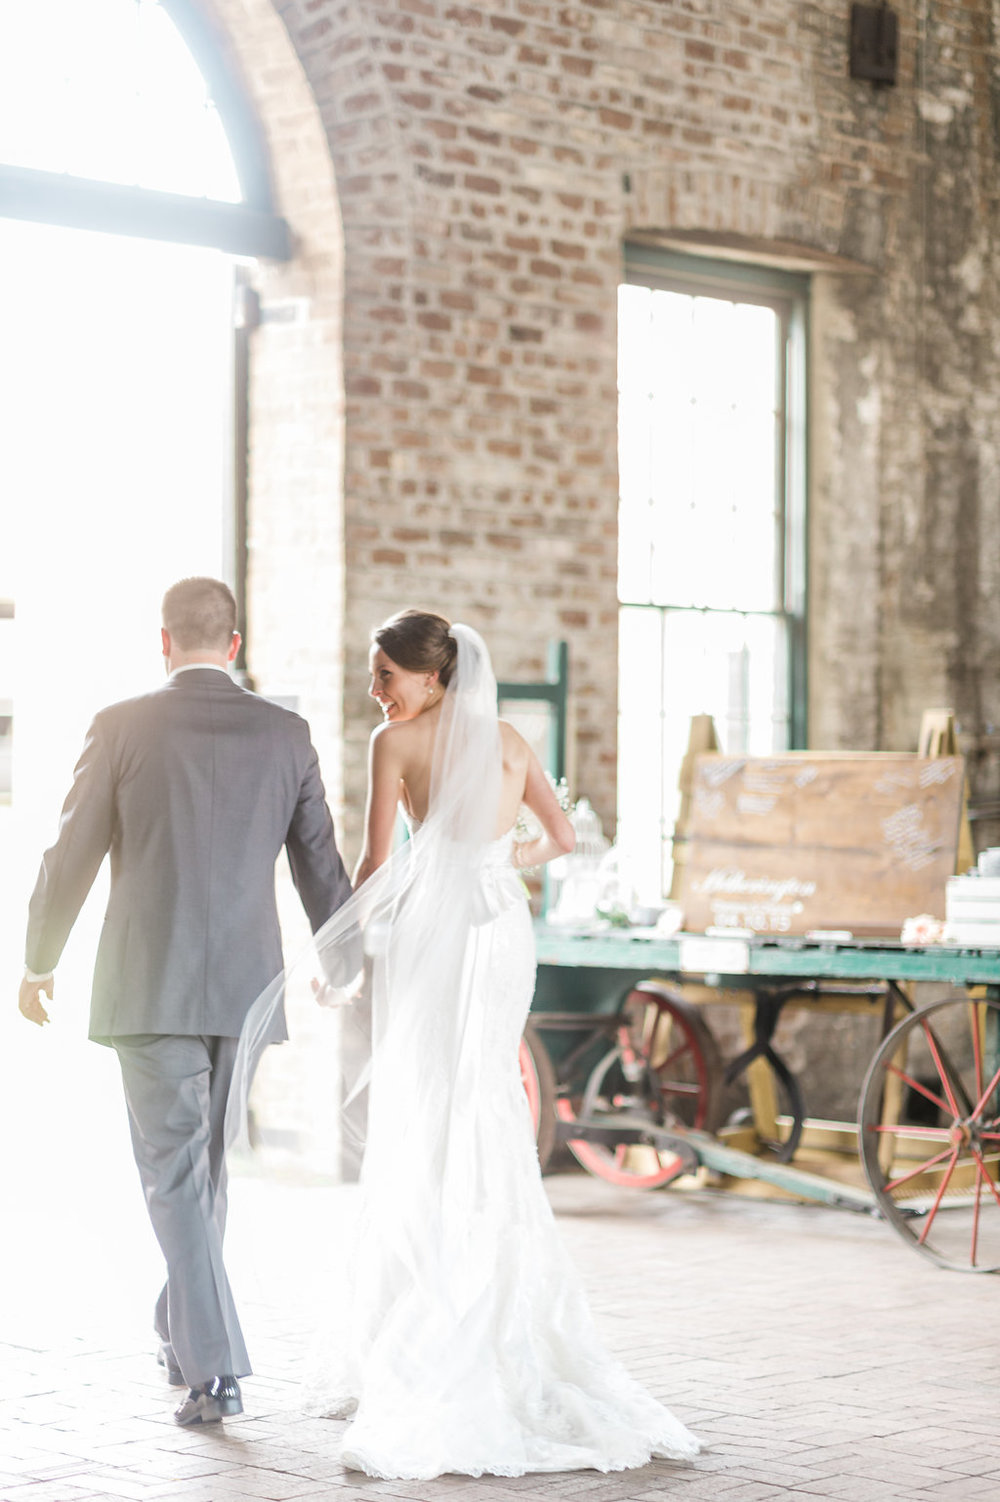 rach-lea-photography-rach-loves-troy-roundhouse-railroad-museum-wedding-ivory-and-beau-savannah-wedding-planner-savannah-weddings-savannah-florist-ivory-and-beau-bridal-boutique-succulent-blush-wedding-37.jpg